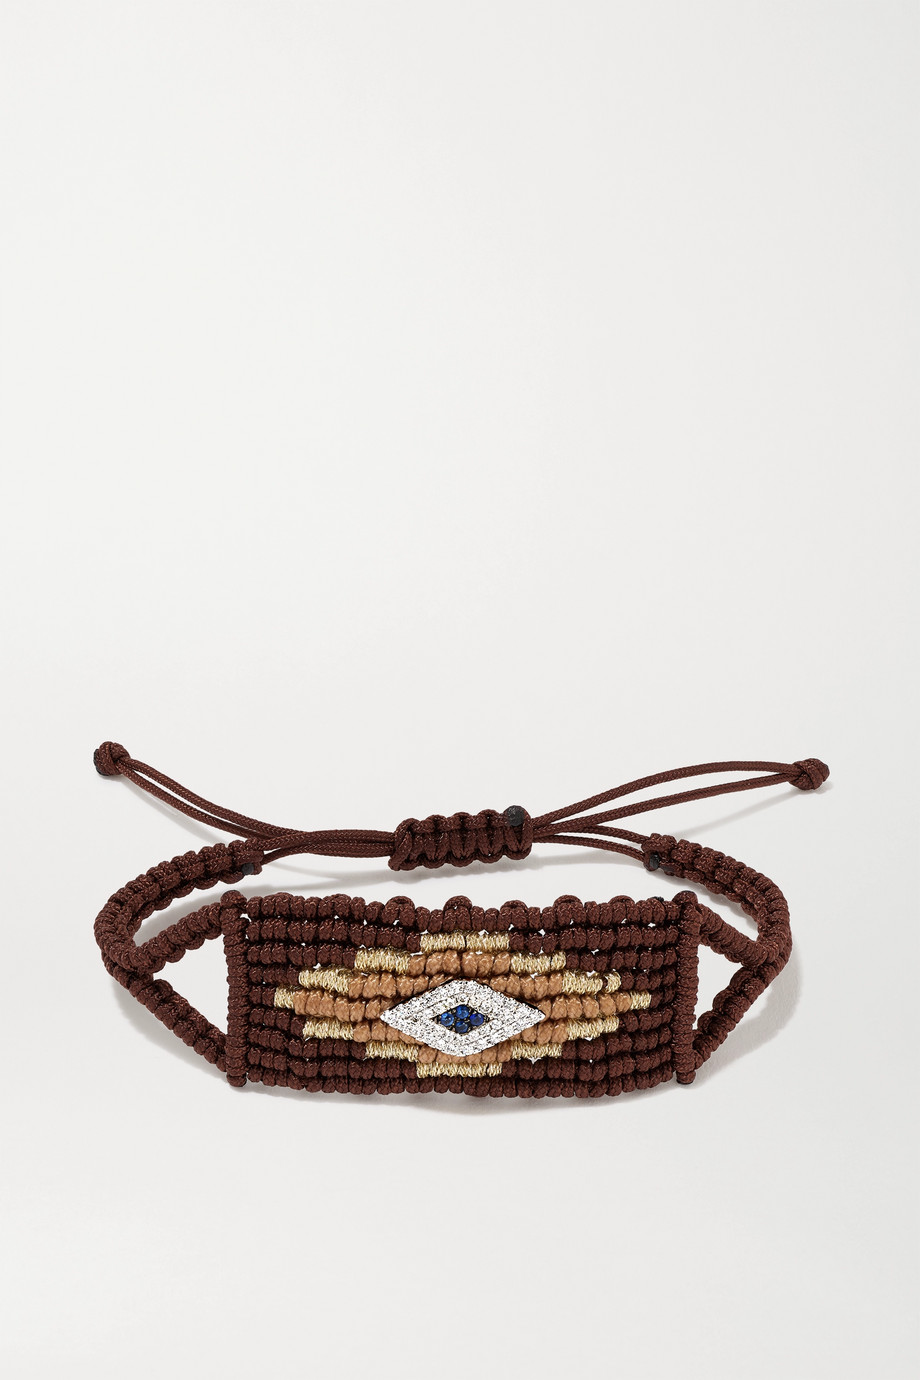 DIANE KORDAS Evil Eye woven cord and 14-karat white gold diamond and sapphire bracelet